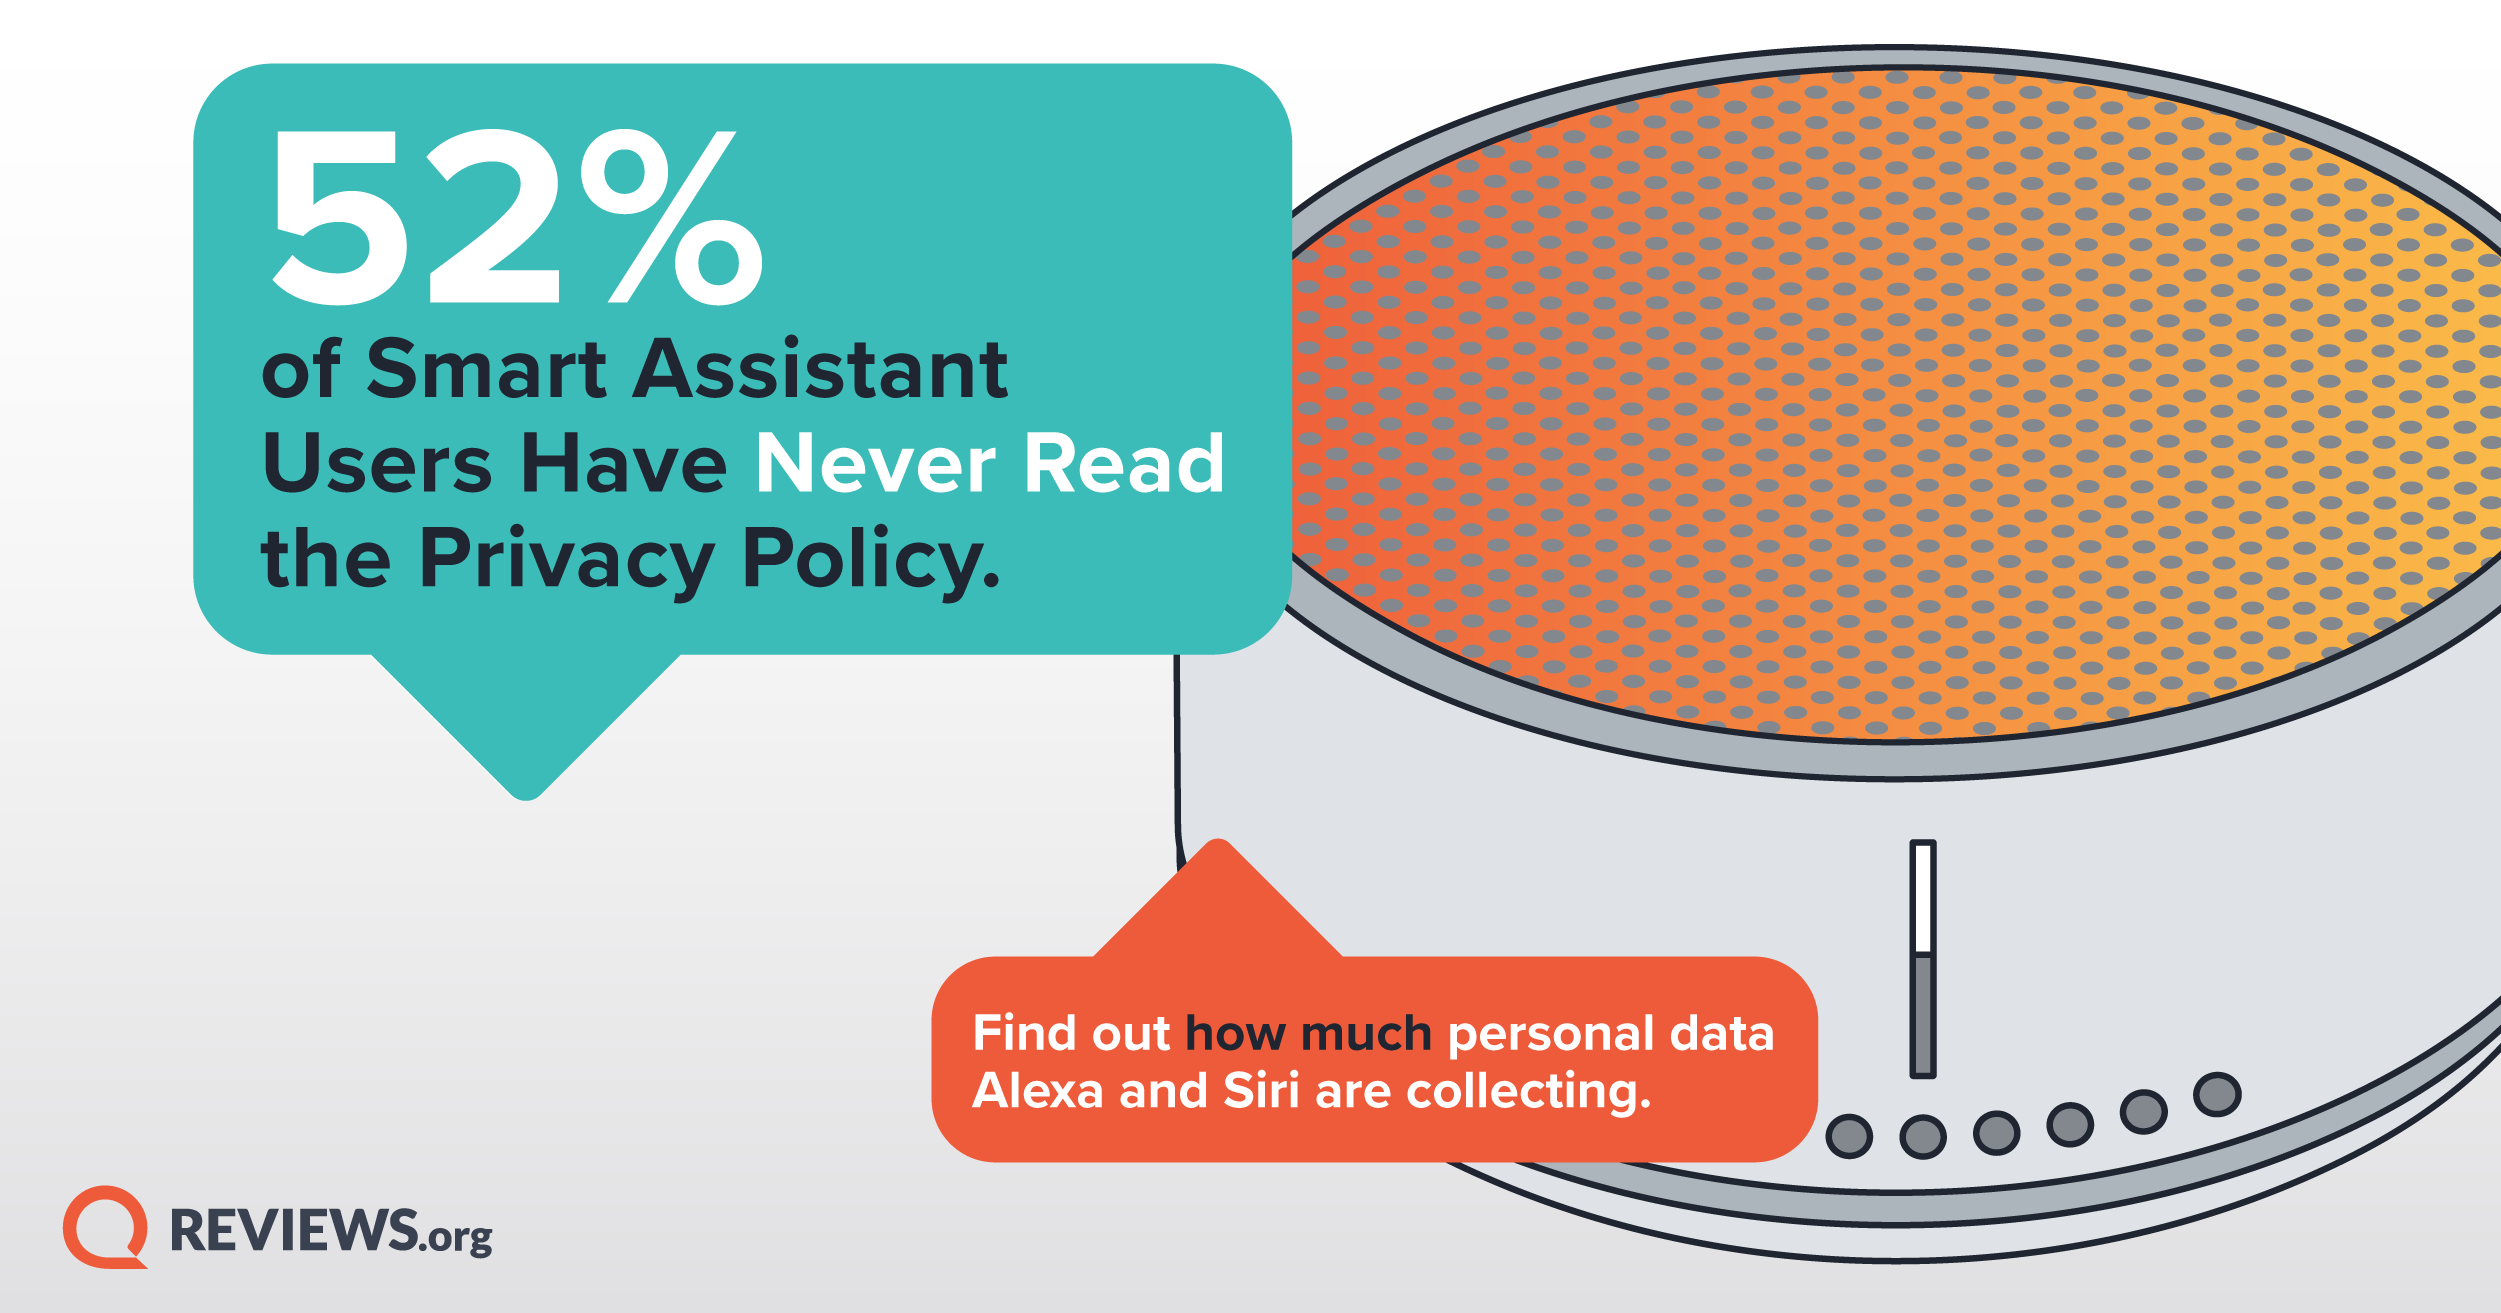 52% of Smart Assistant Users Haven't Read the Privacy Policy